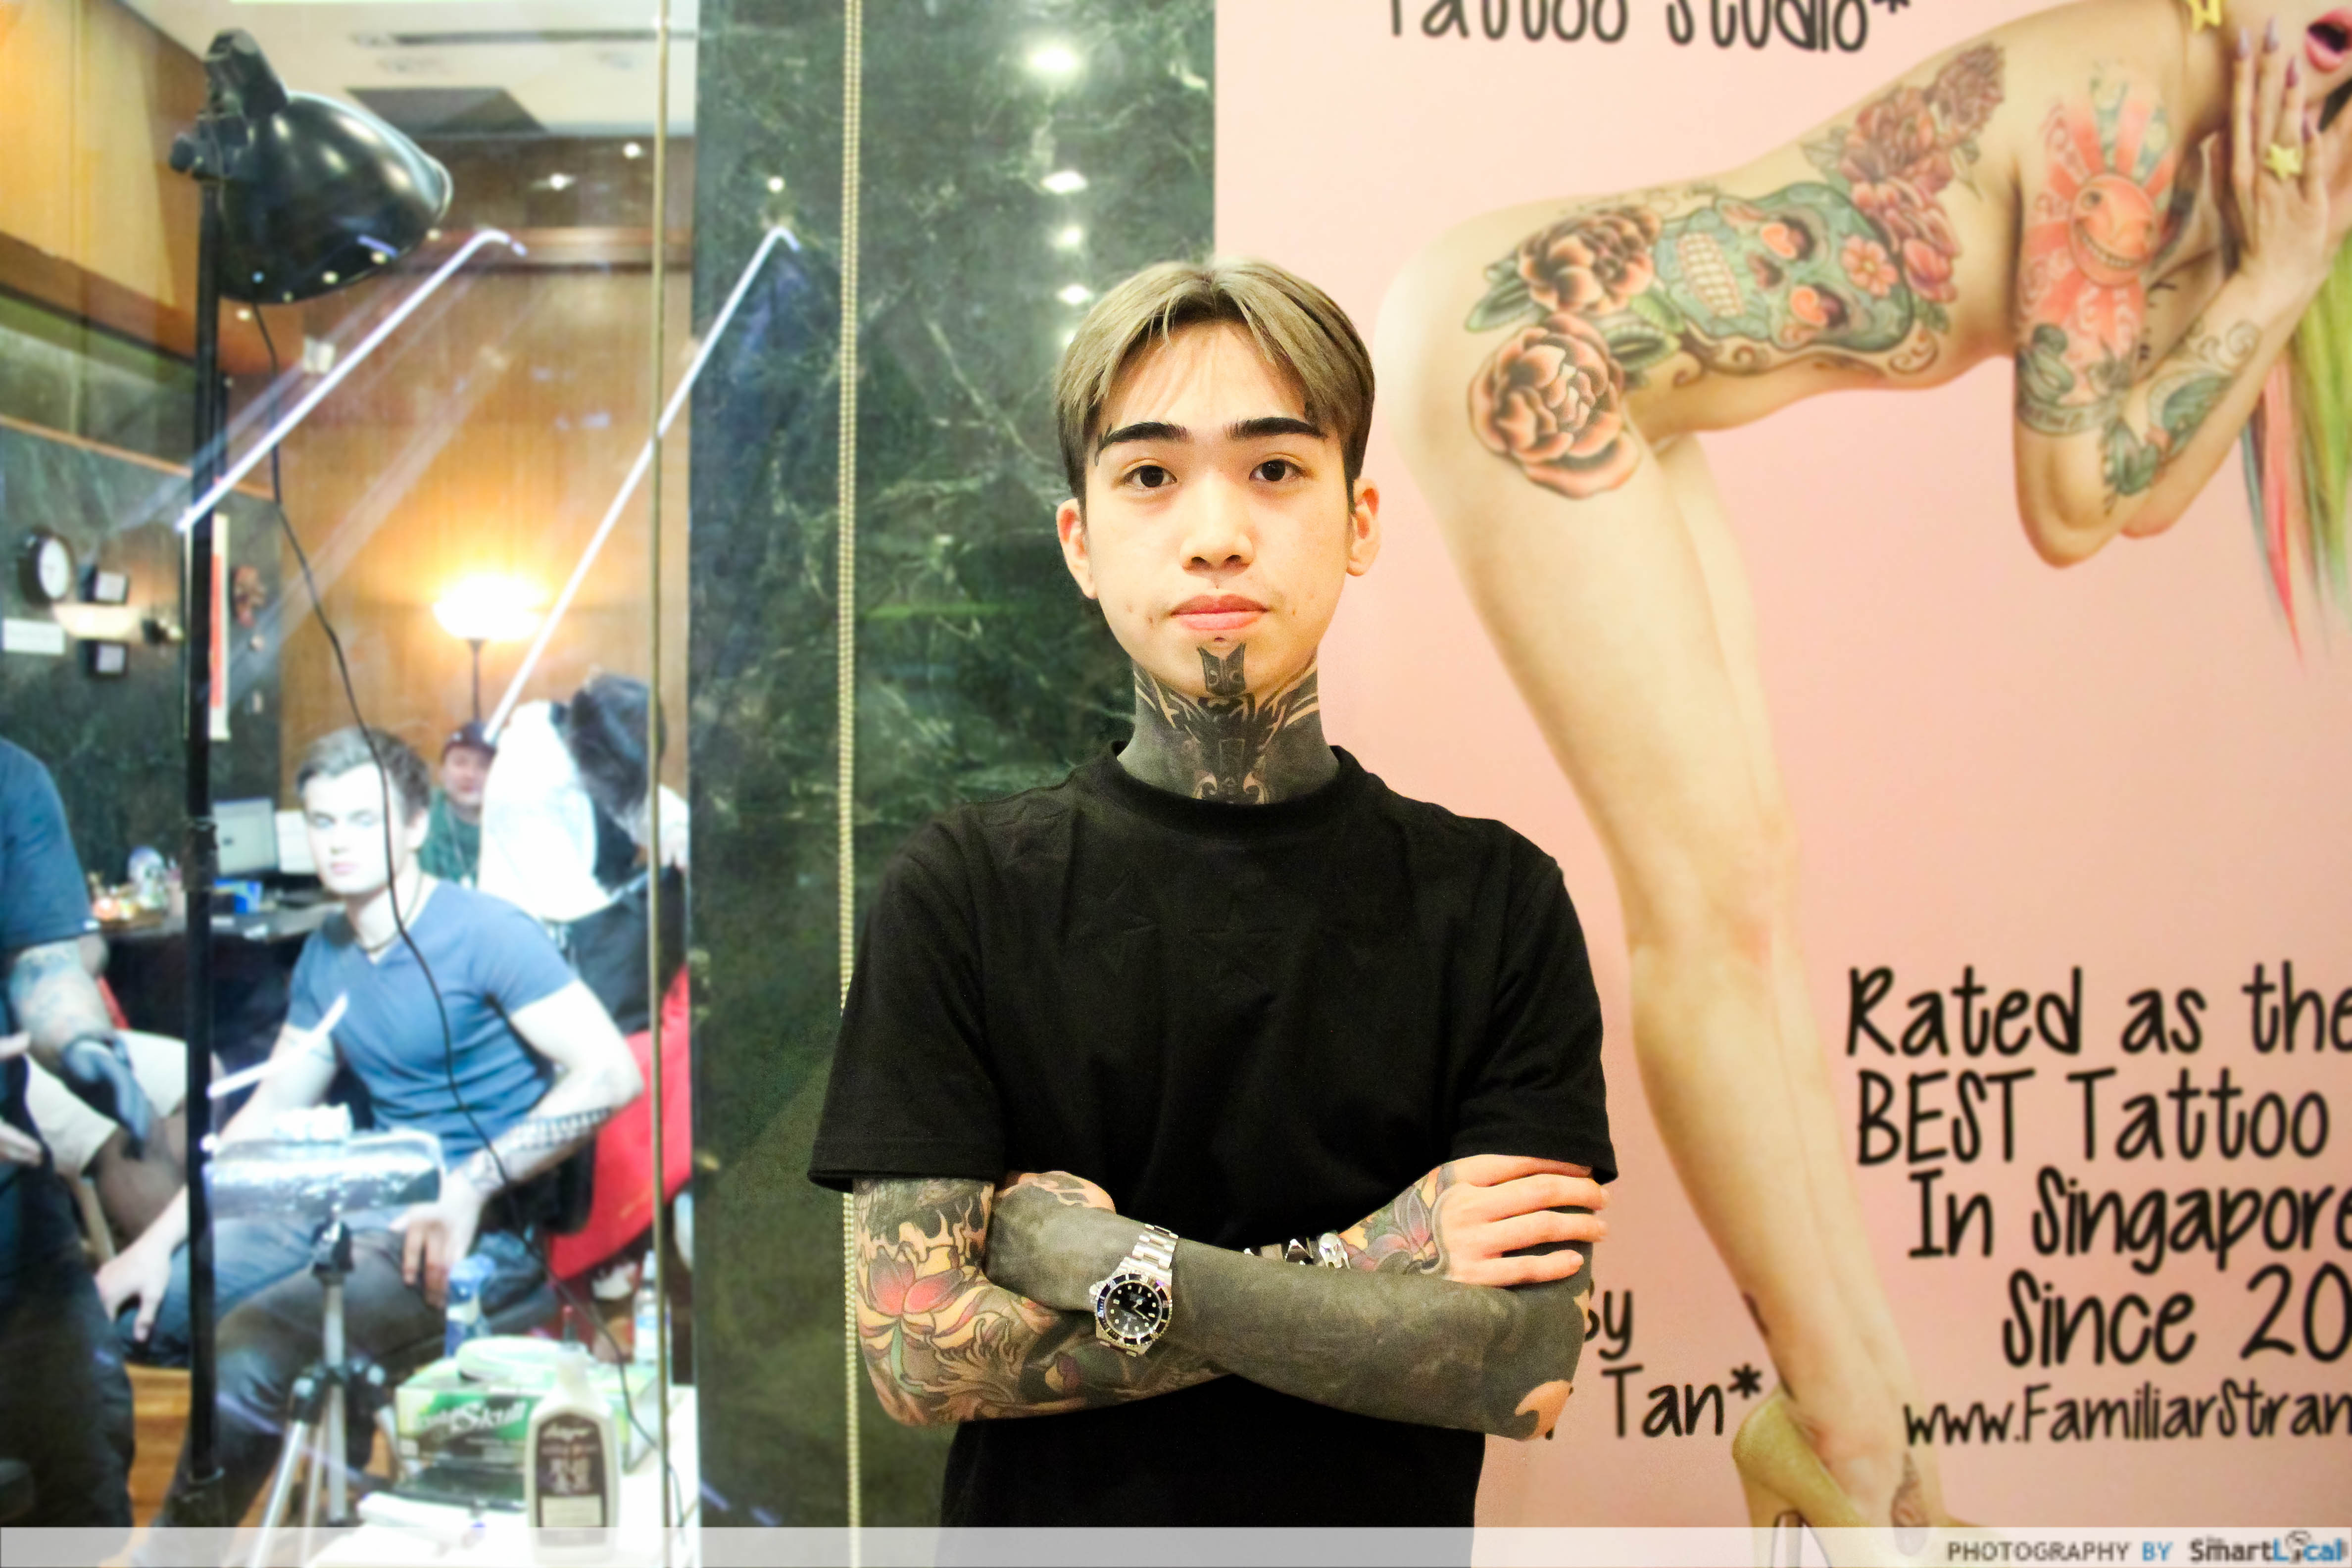 8a0c2b0e8f109 Tattoo Artists of Singapore & Questions You've Always Wanted To Ask Them